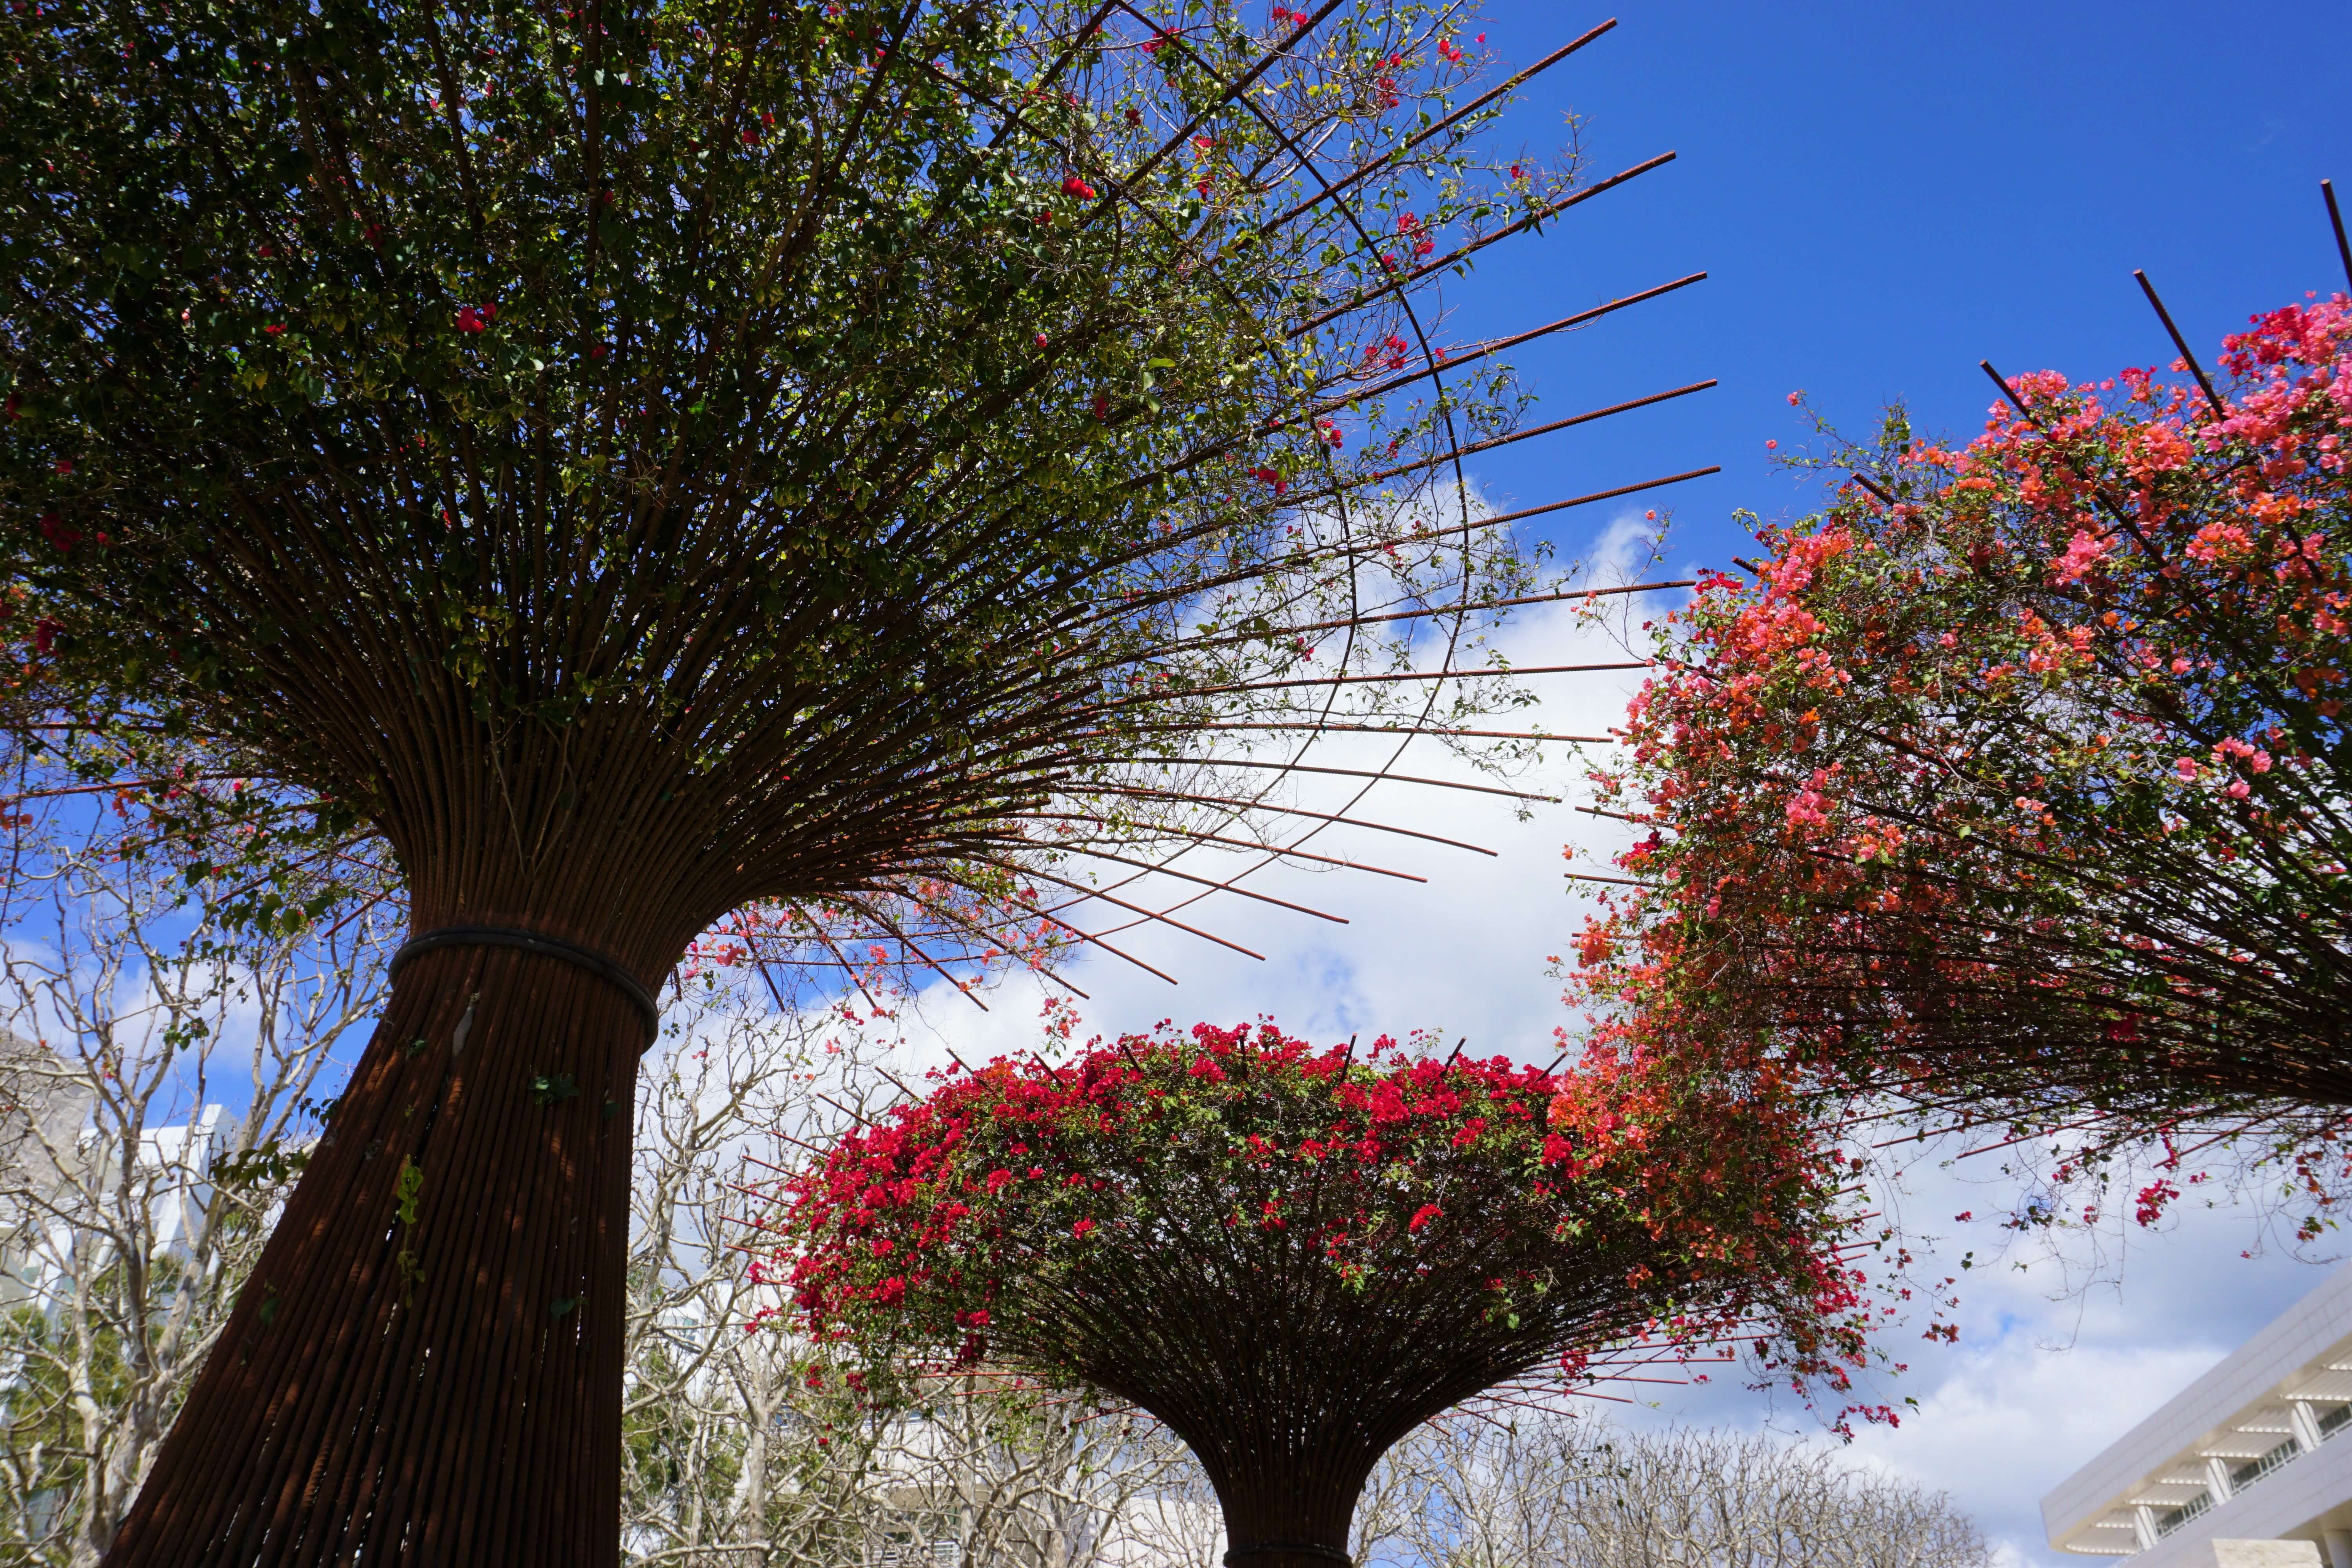 More views of the Getty gardens--flowering plants atop tall wooden trellises